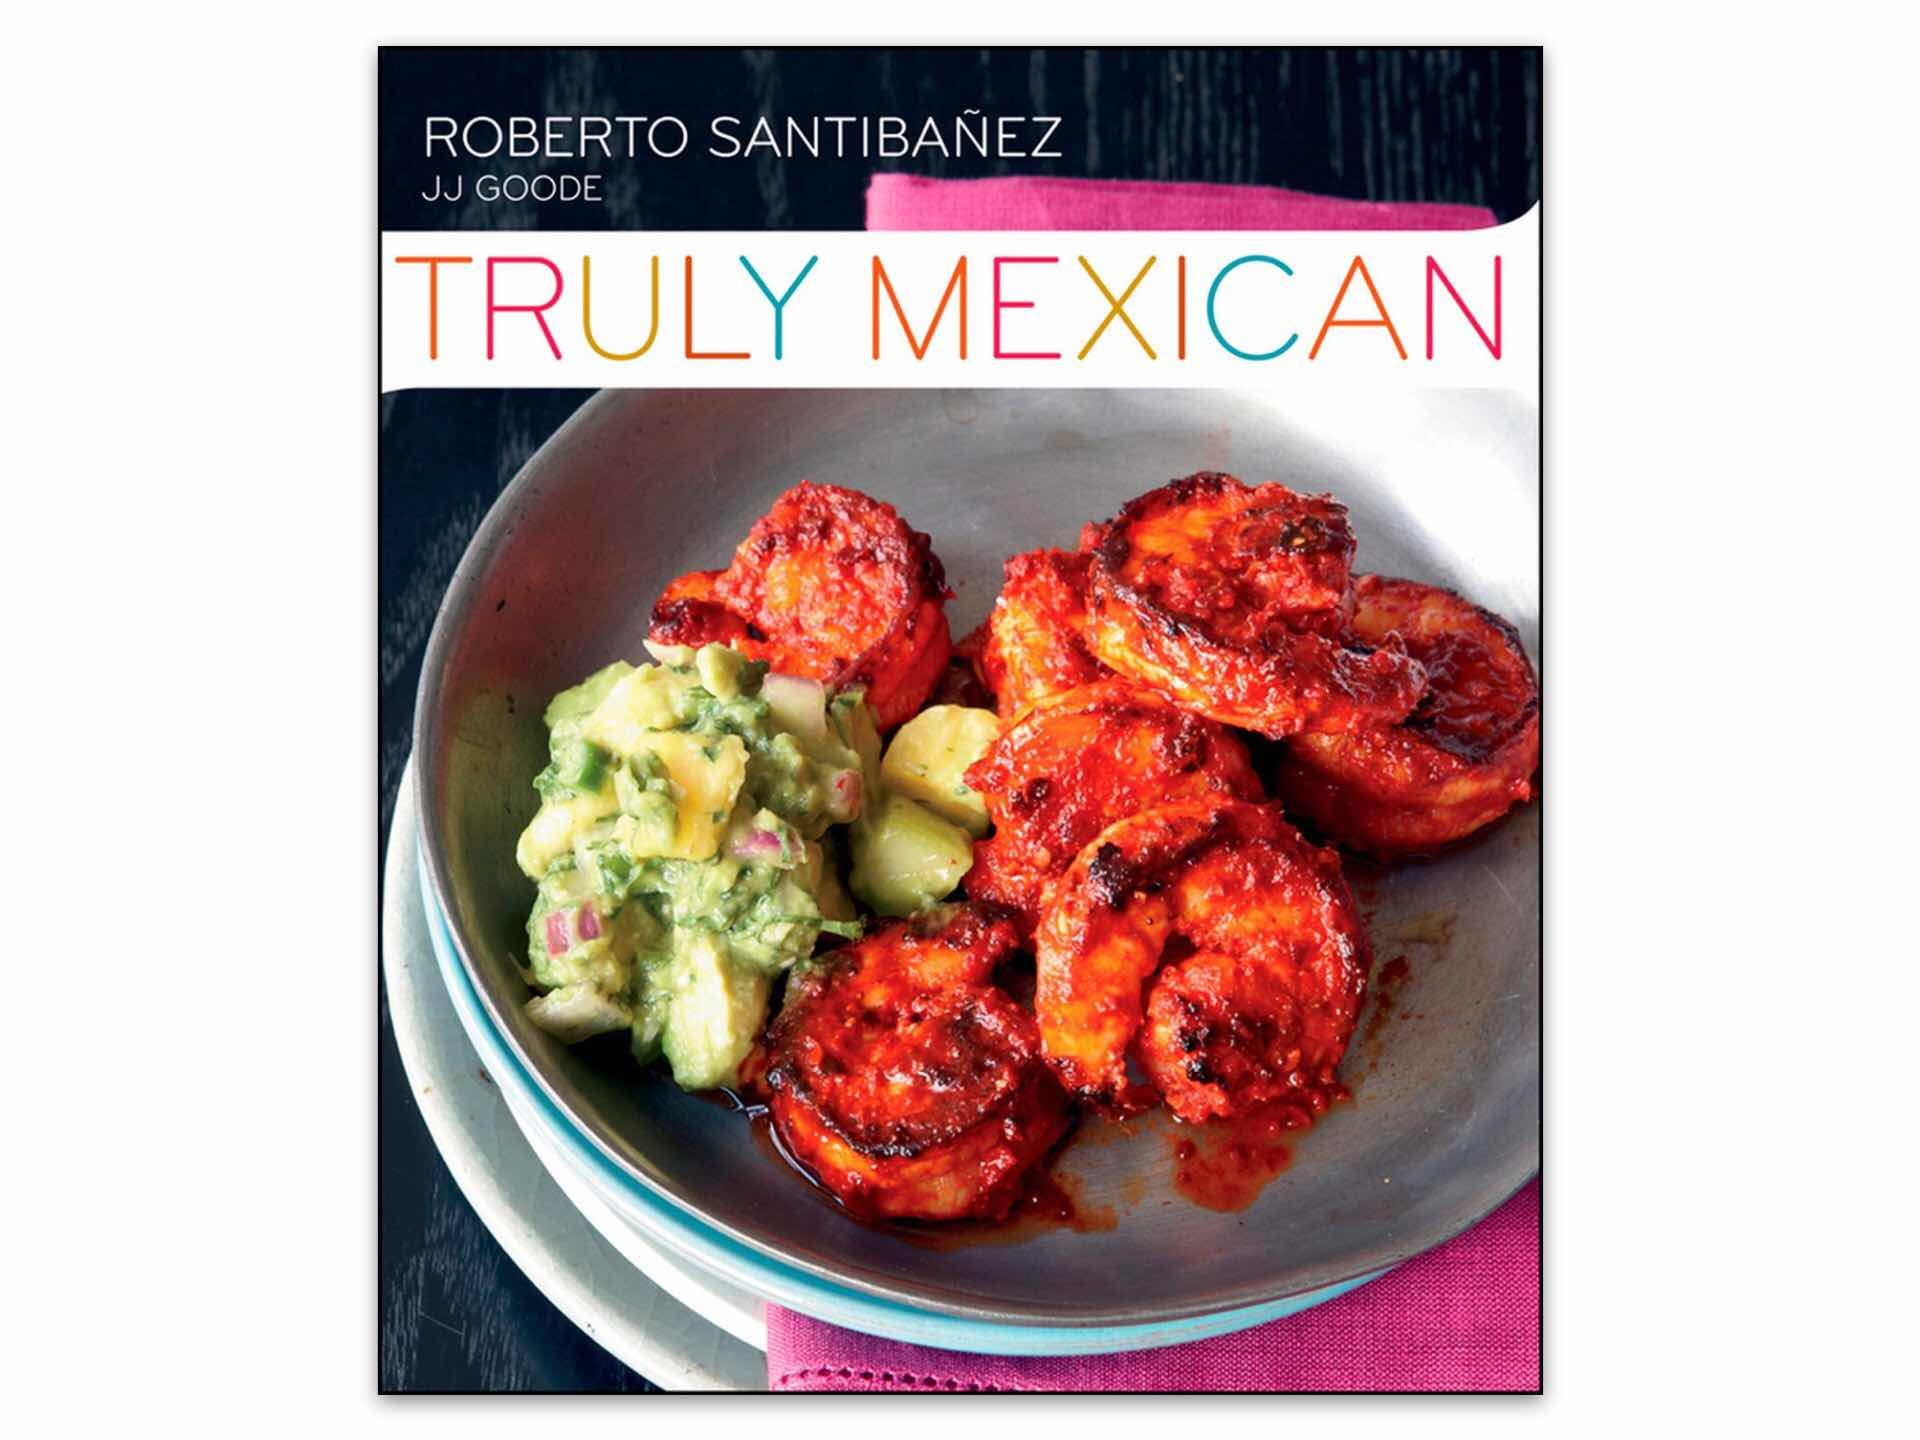 Truly Mexican by Roberto Santibañez and JJ Goode. ($25 hardcover)